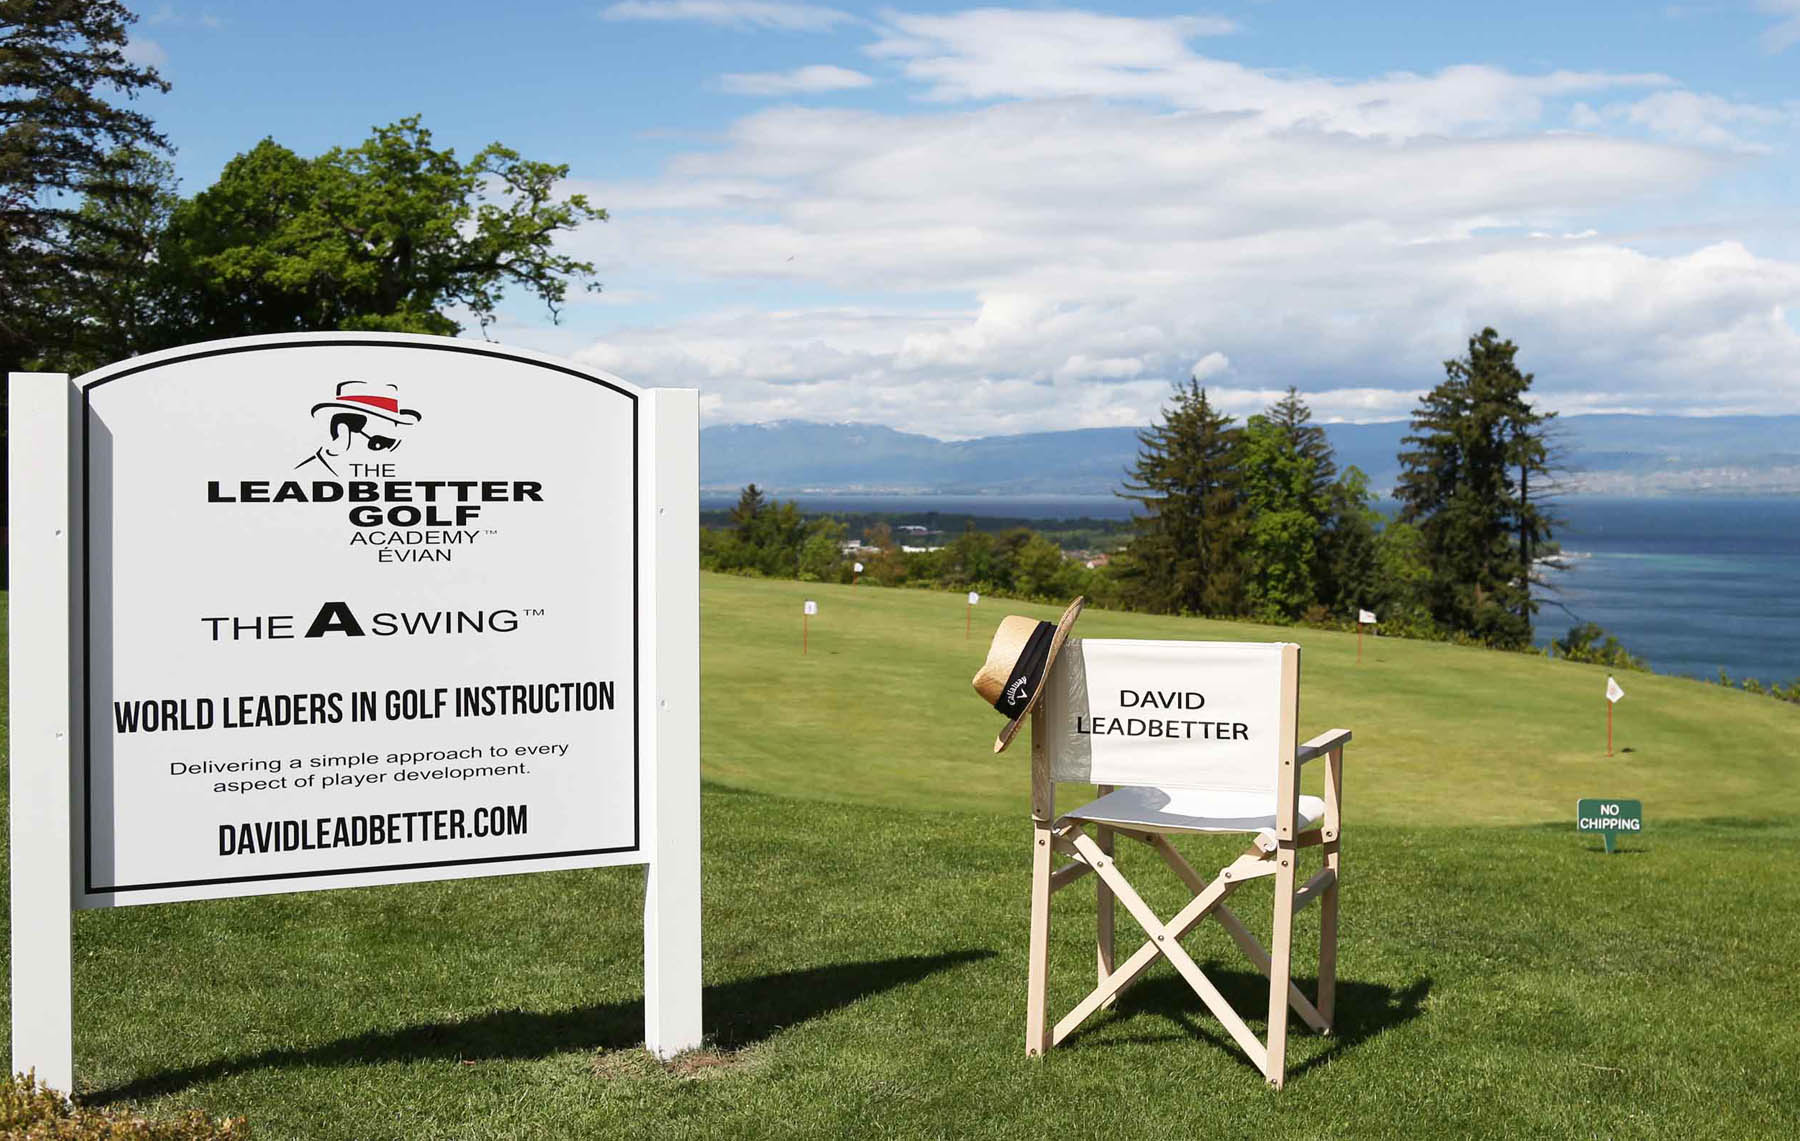 Image newsfeed The Leadbetter Golf Academy à Evian